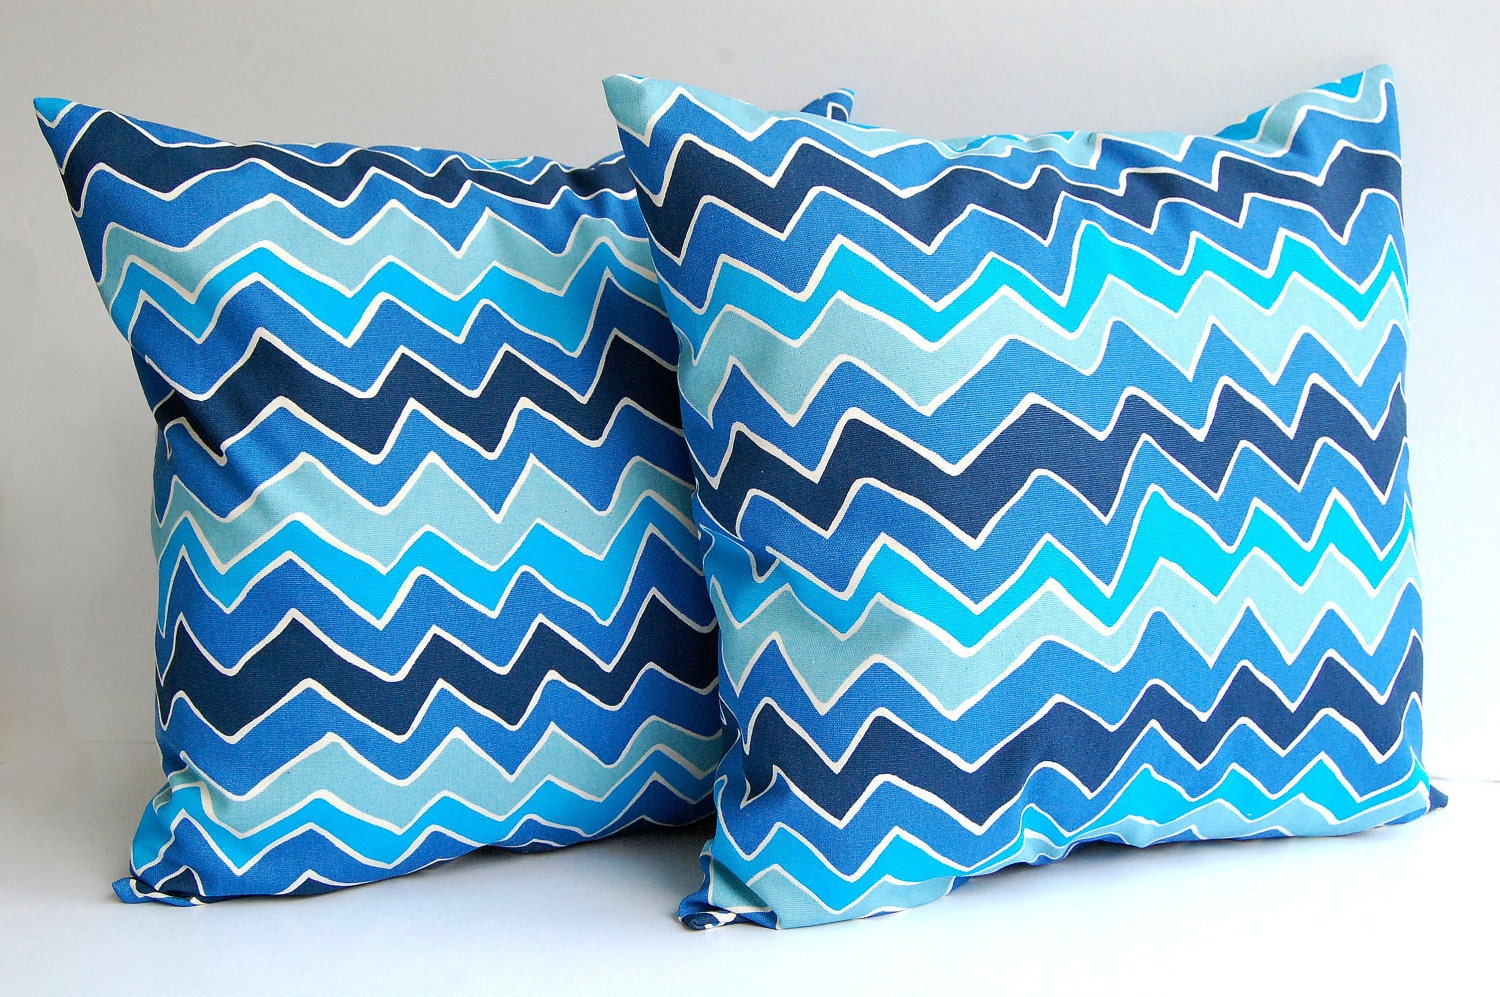 clearance blue throw pillow covers set of two by With decorative pillow sets clearance